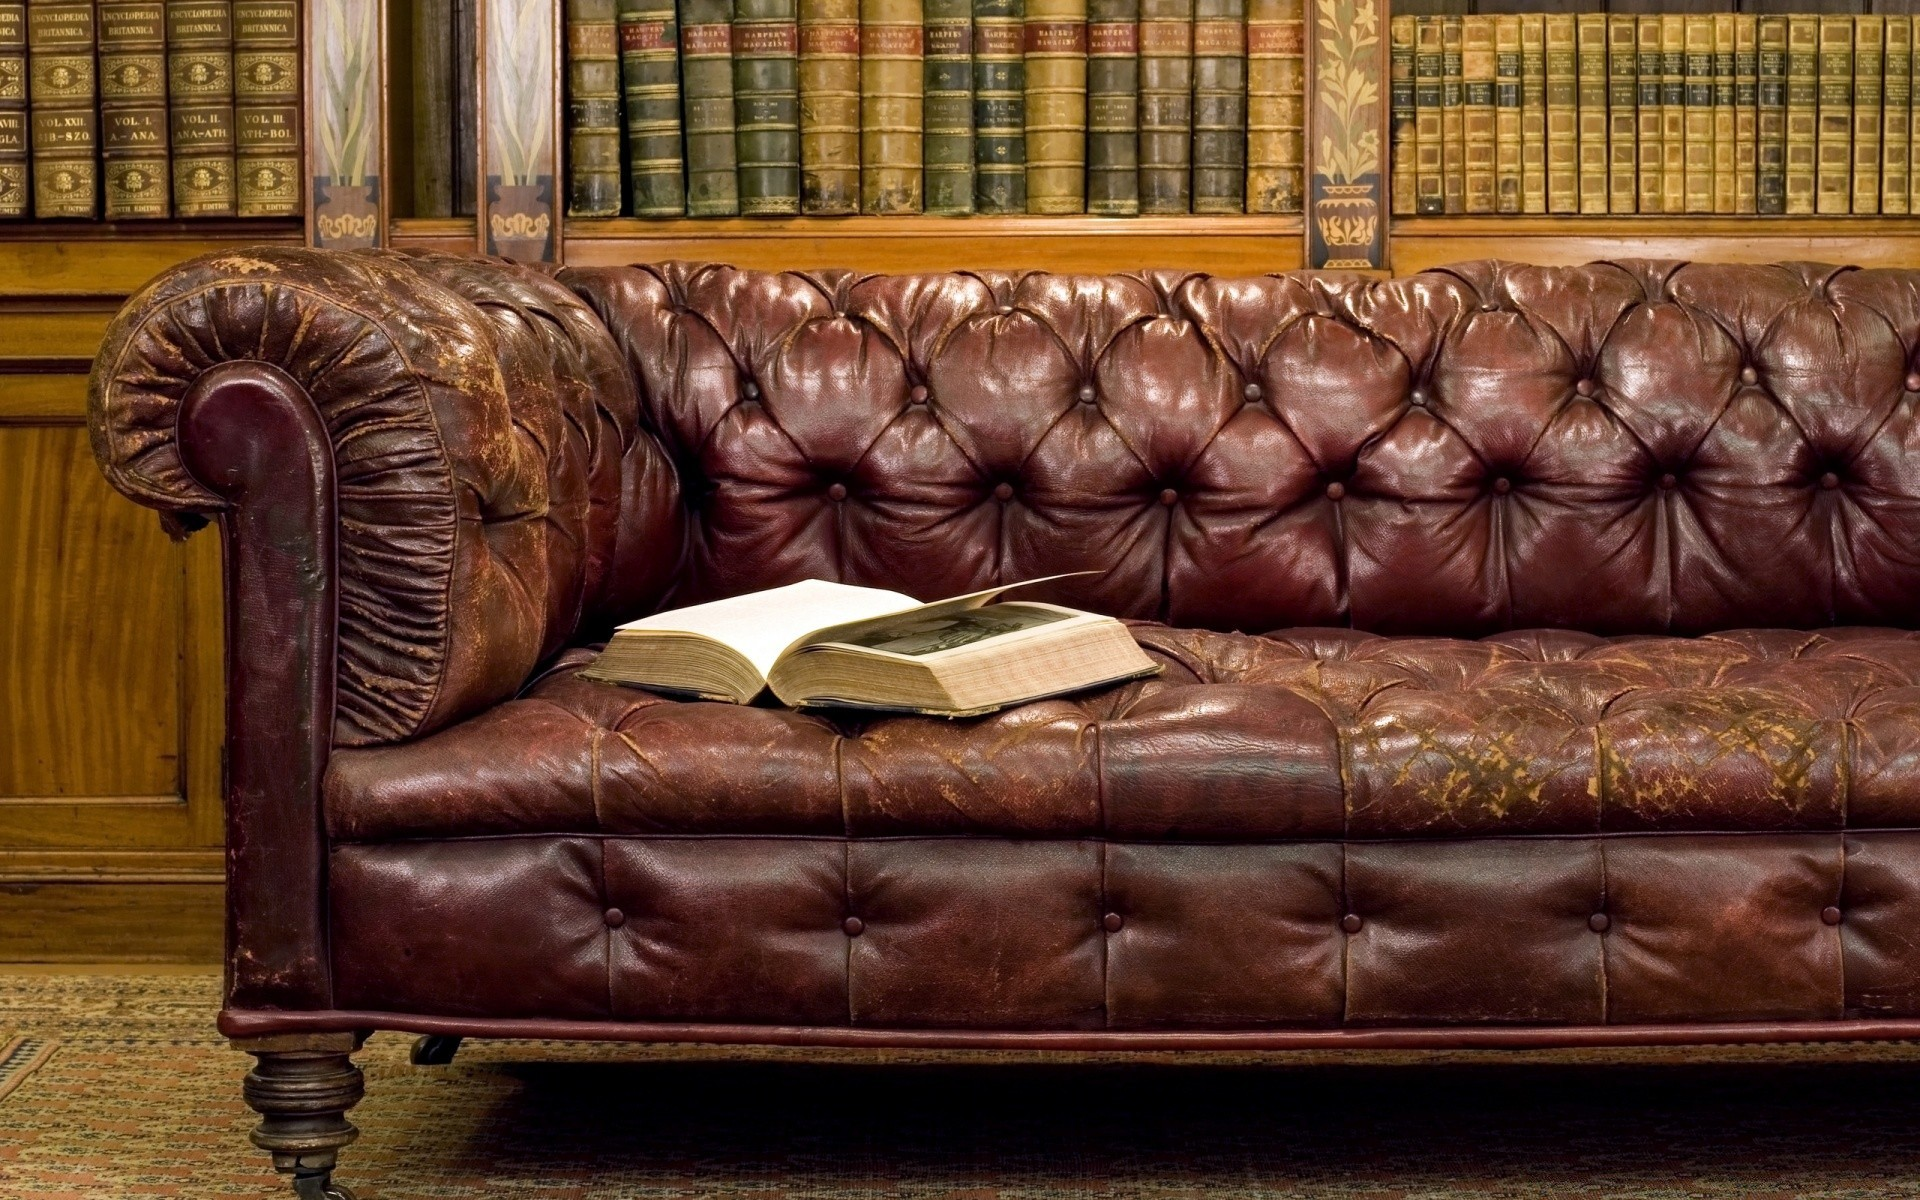 Library Old Leather Sofa - Phone wallpapers